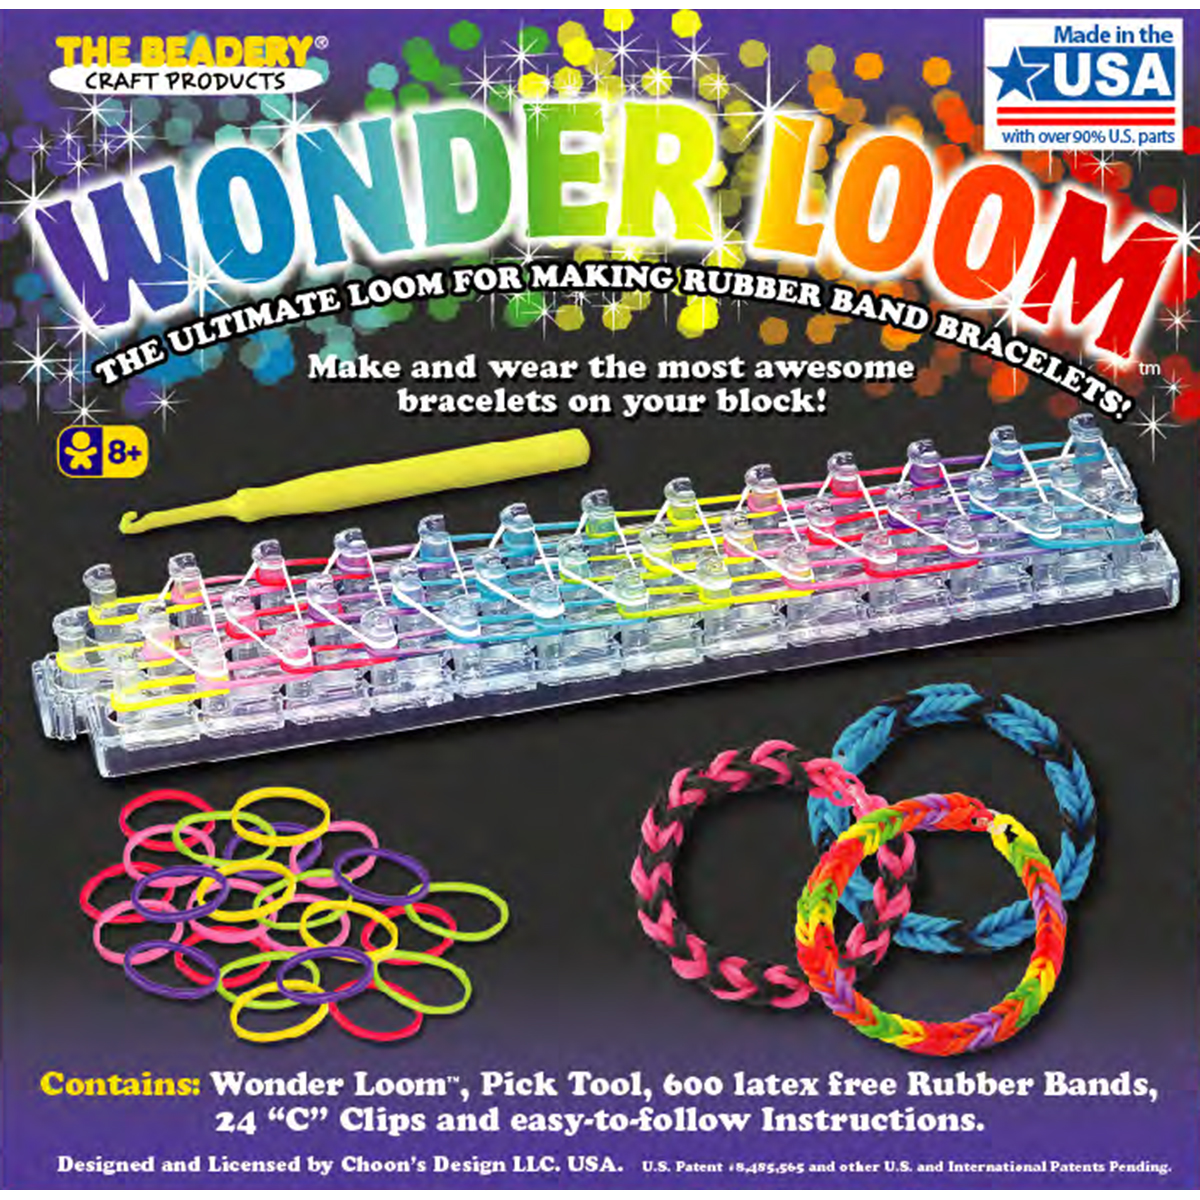 The Beadery Wonder Loom Age 8+